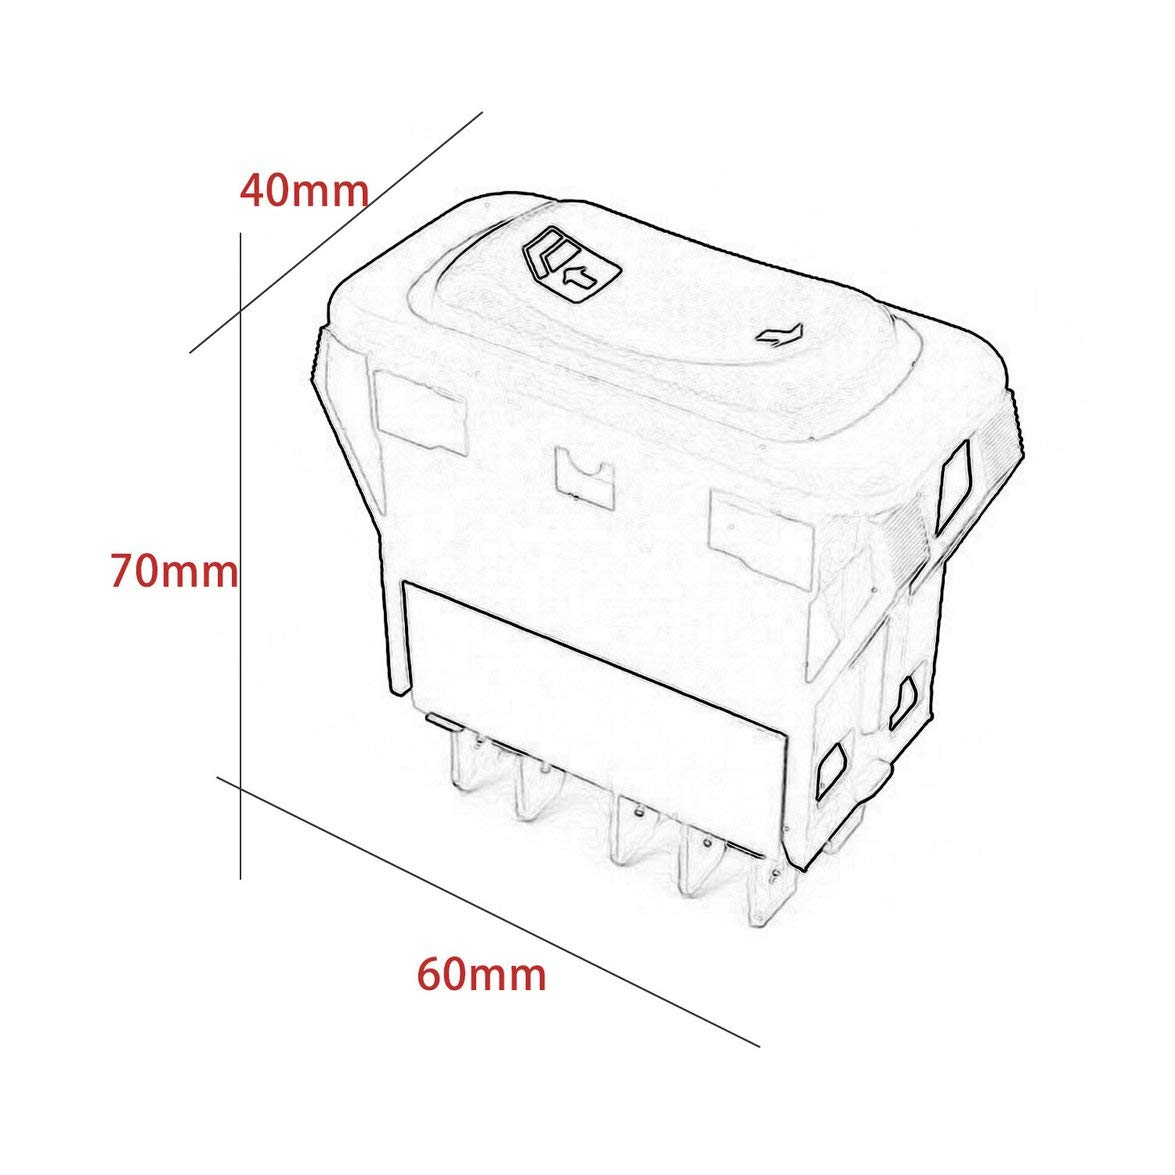 A06-30769-027for Freightliner Columbia Automotive Glass Lift Switch